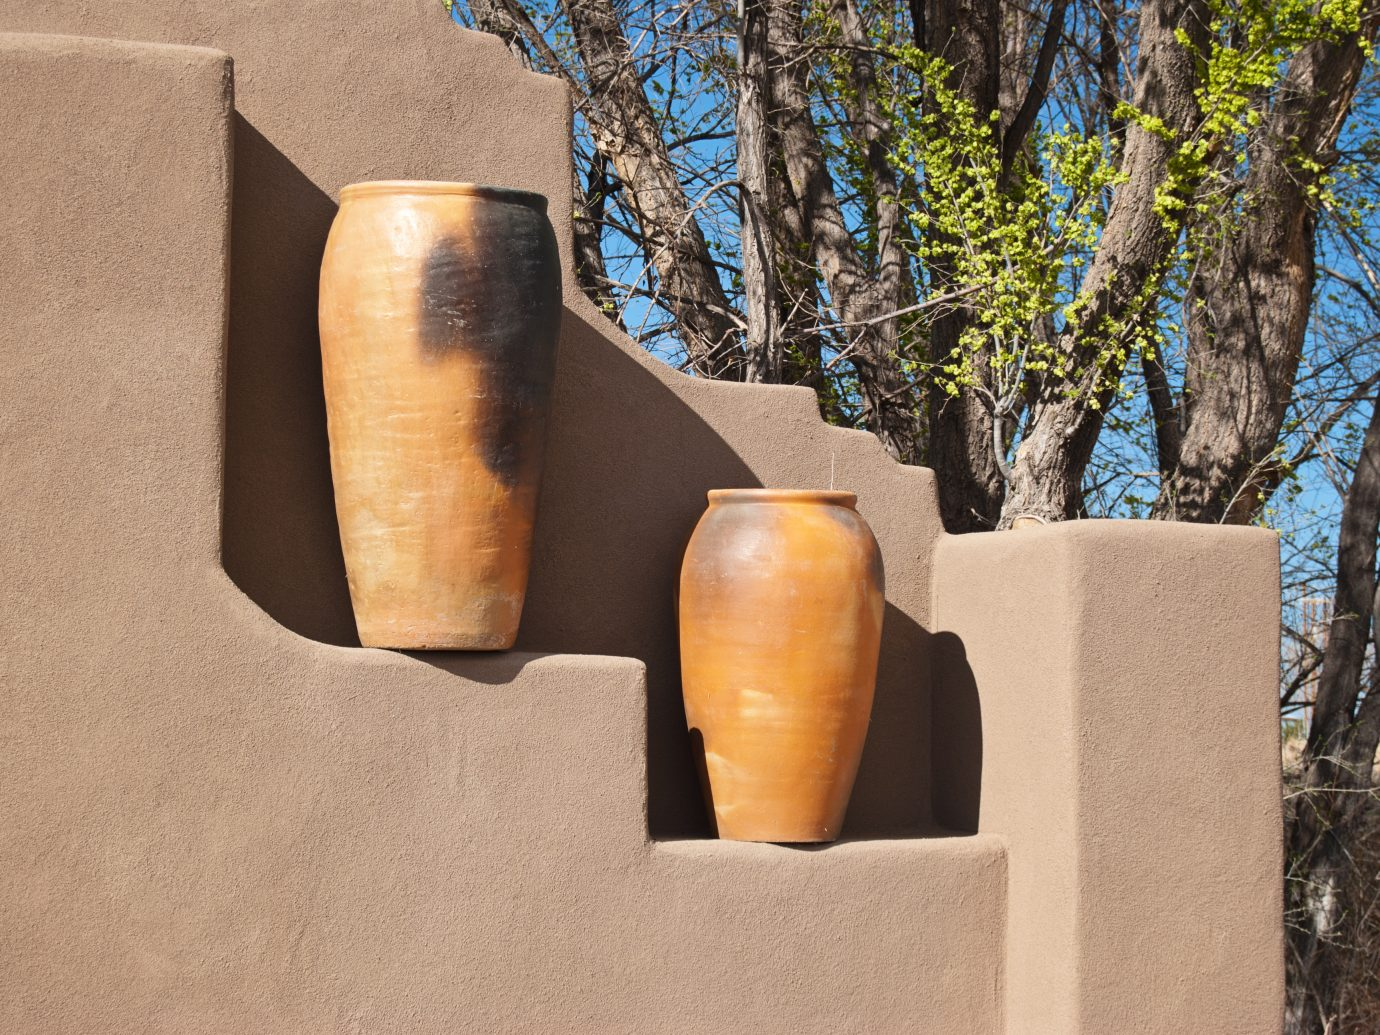 Old adobe house - Southwest - Architectural Detail